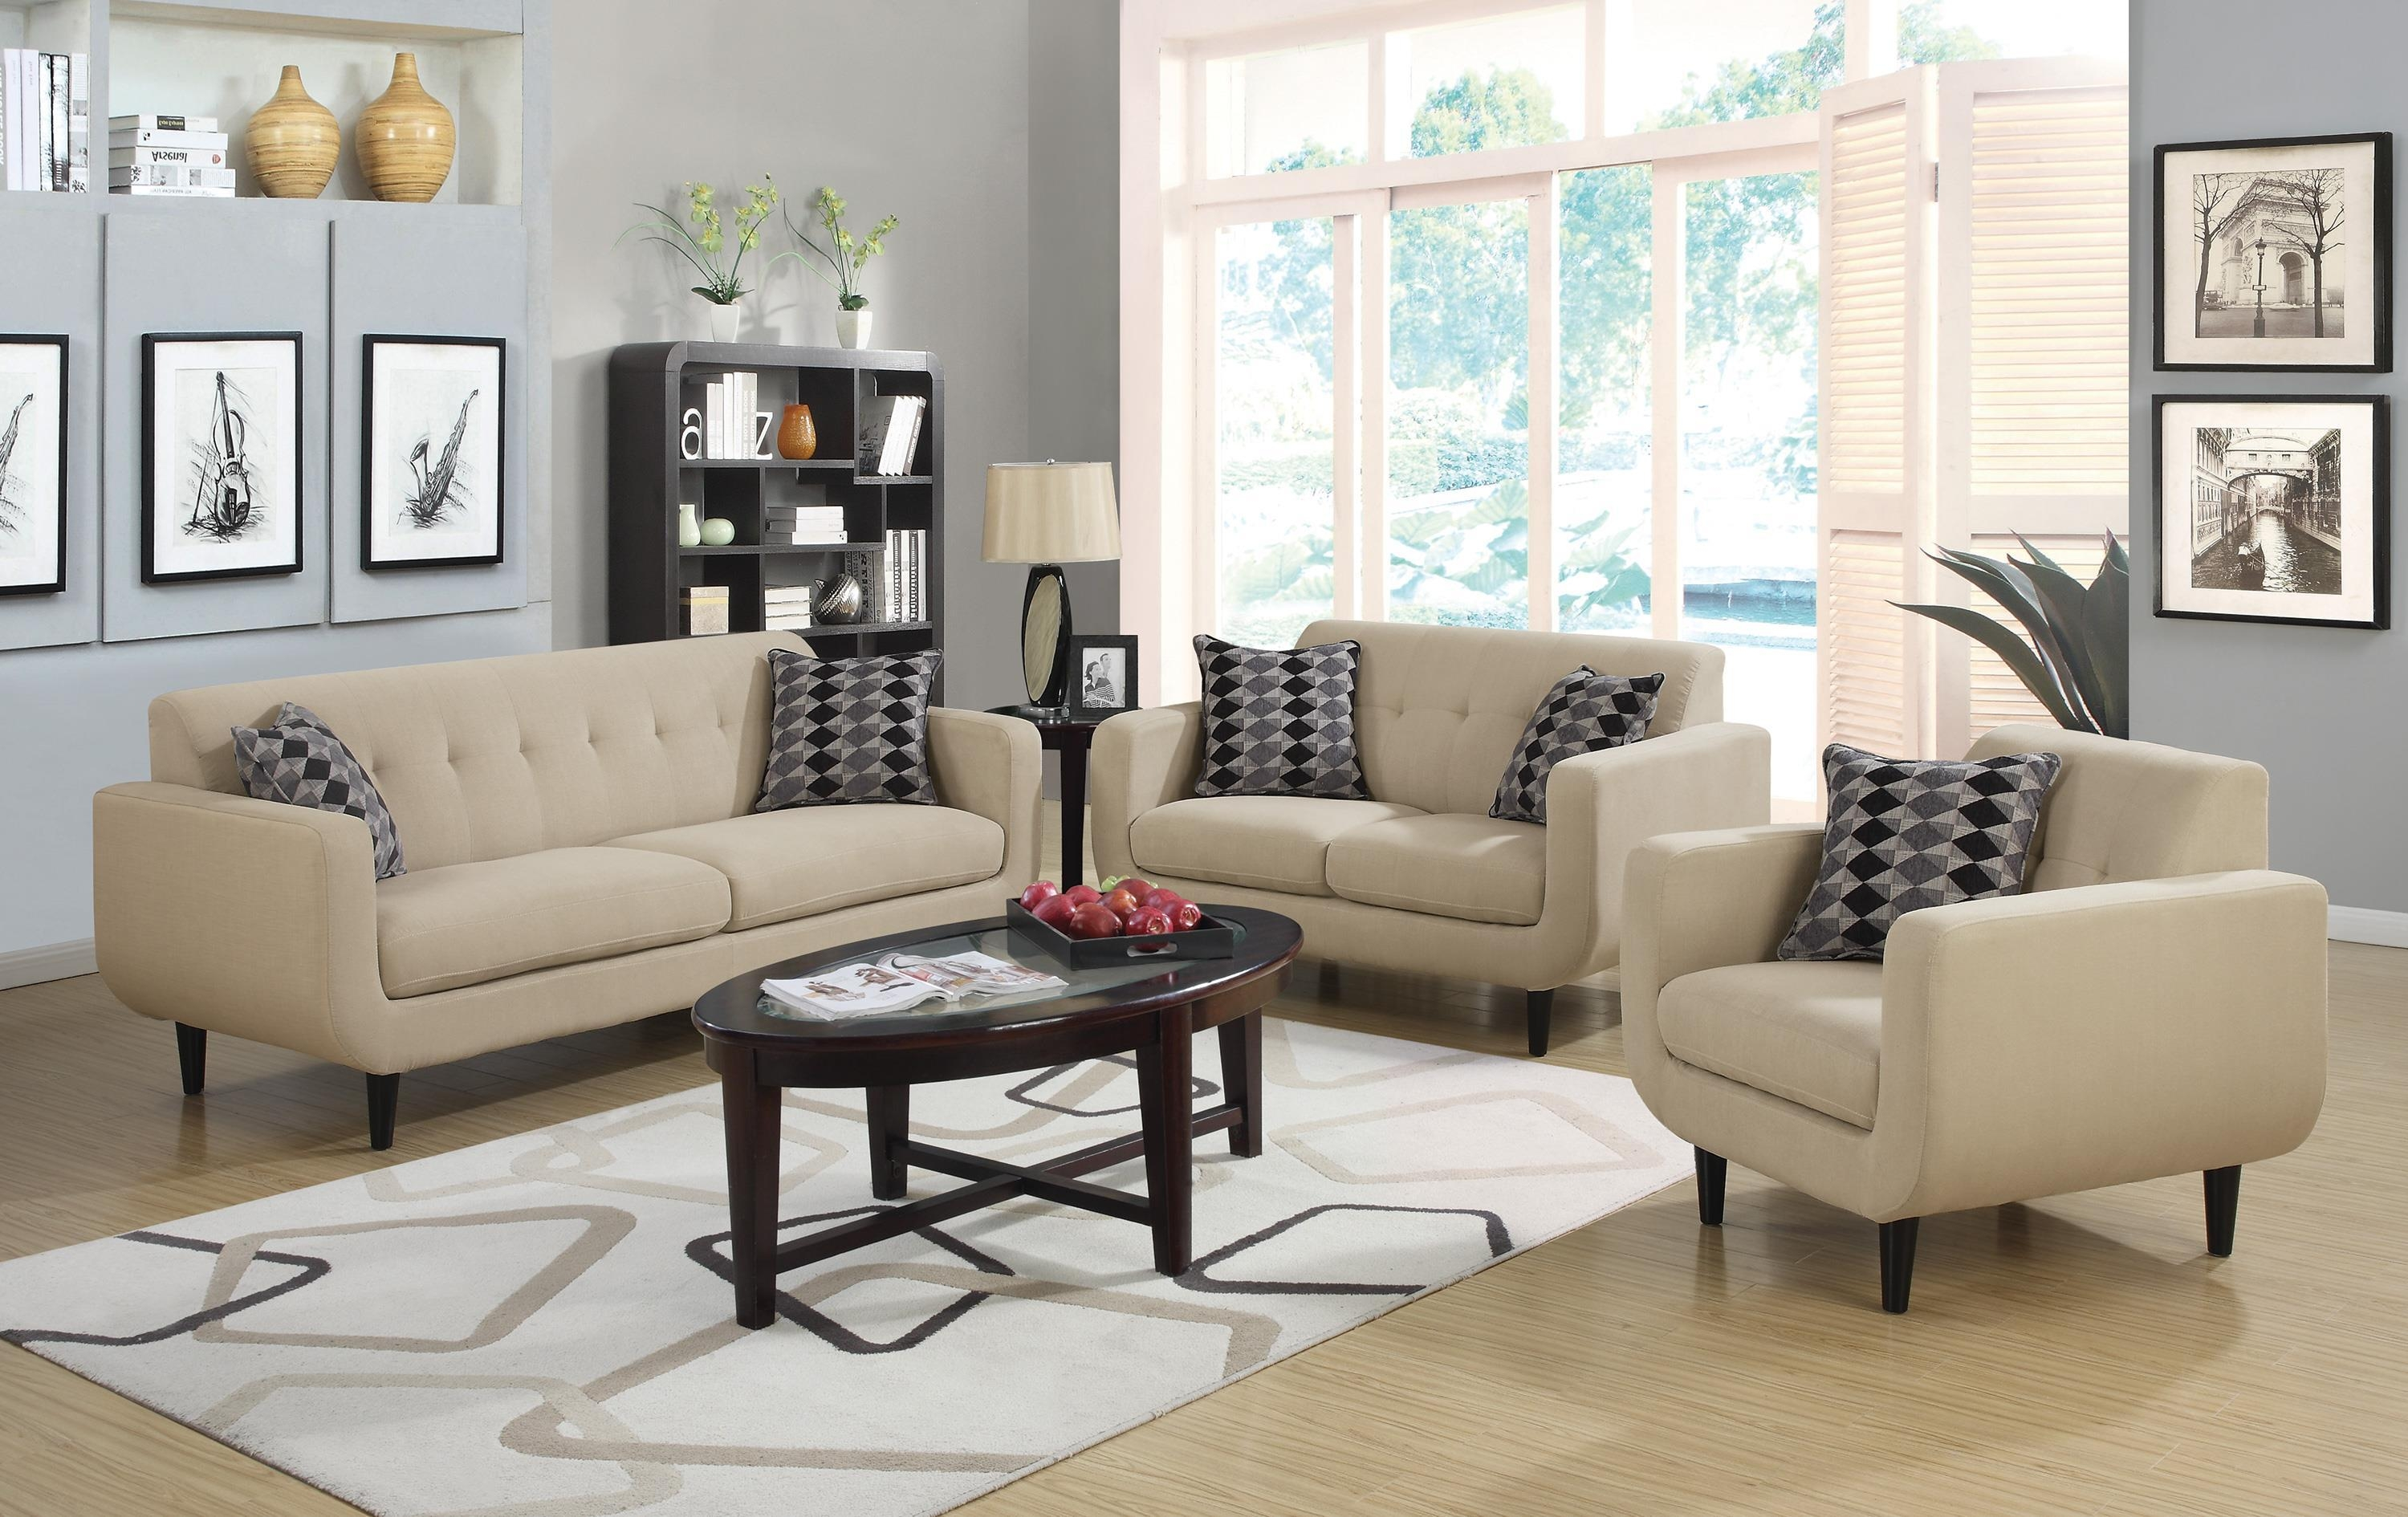 Sofas Couch And Sectionals On The Web And In Chicago And Evanston Regarding Retro Sofas And Chairs (Image 19 of 20)